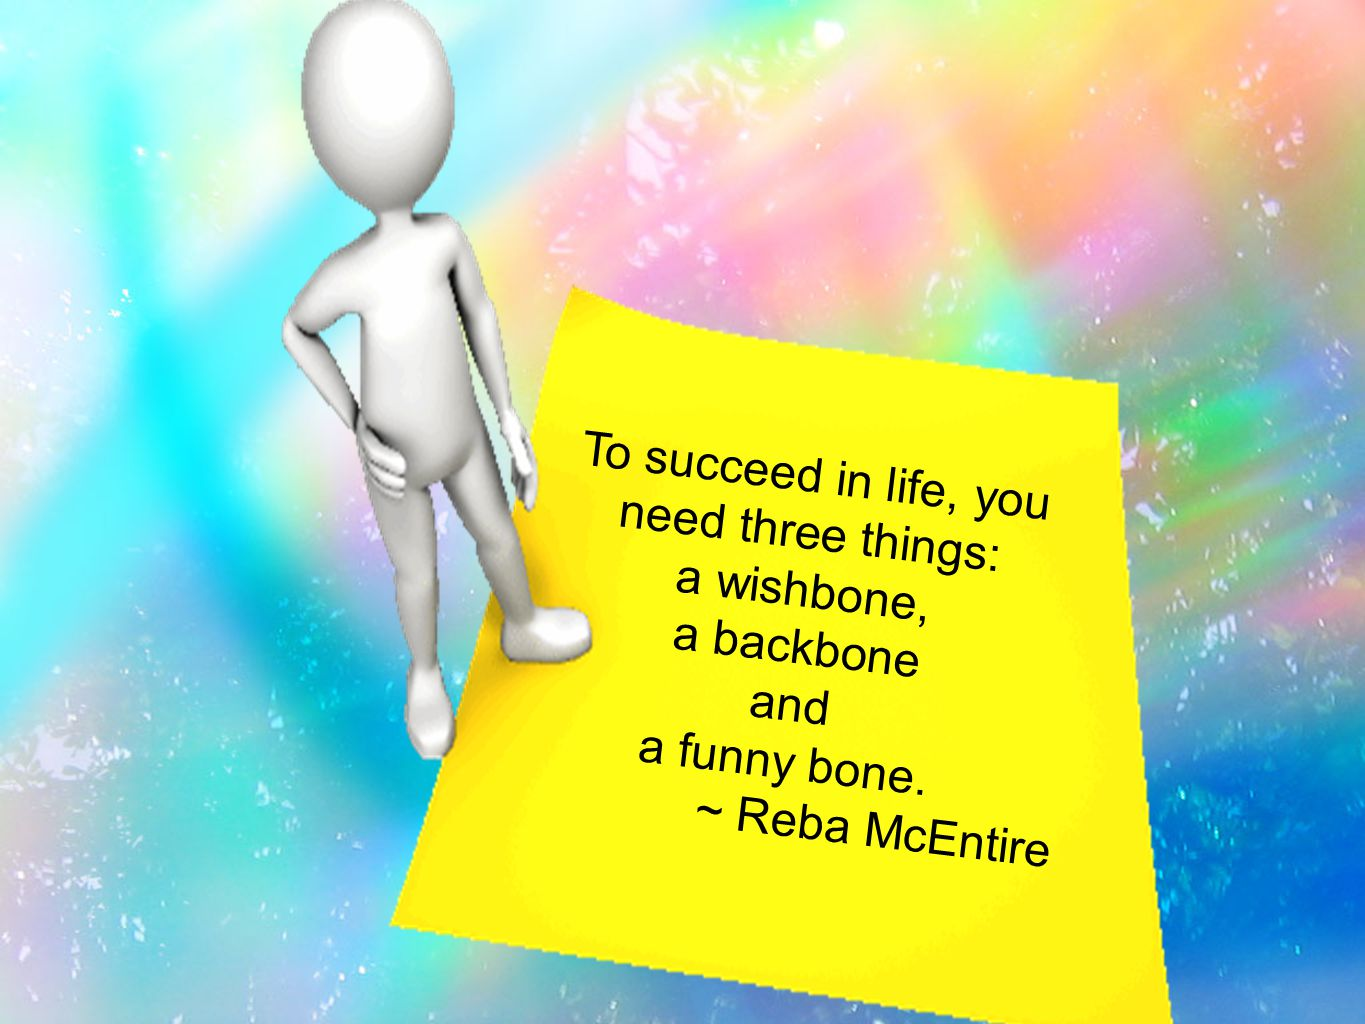 To succeed in life, you need three things: a wishbone, a backbone and a funny bone. ~ Reba McEntire